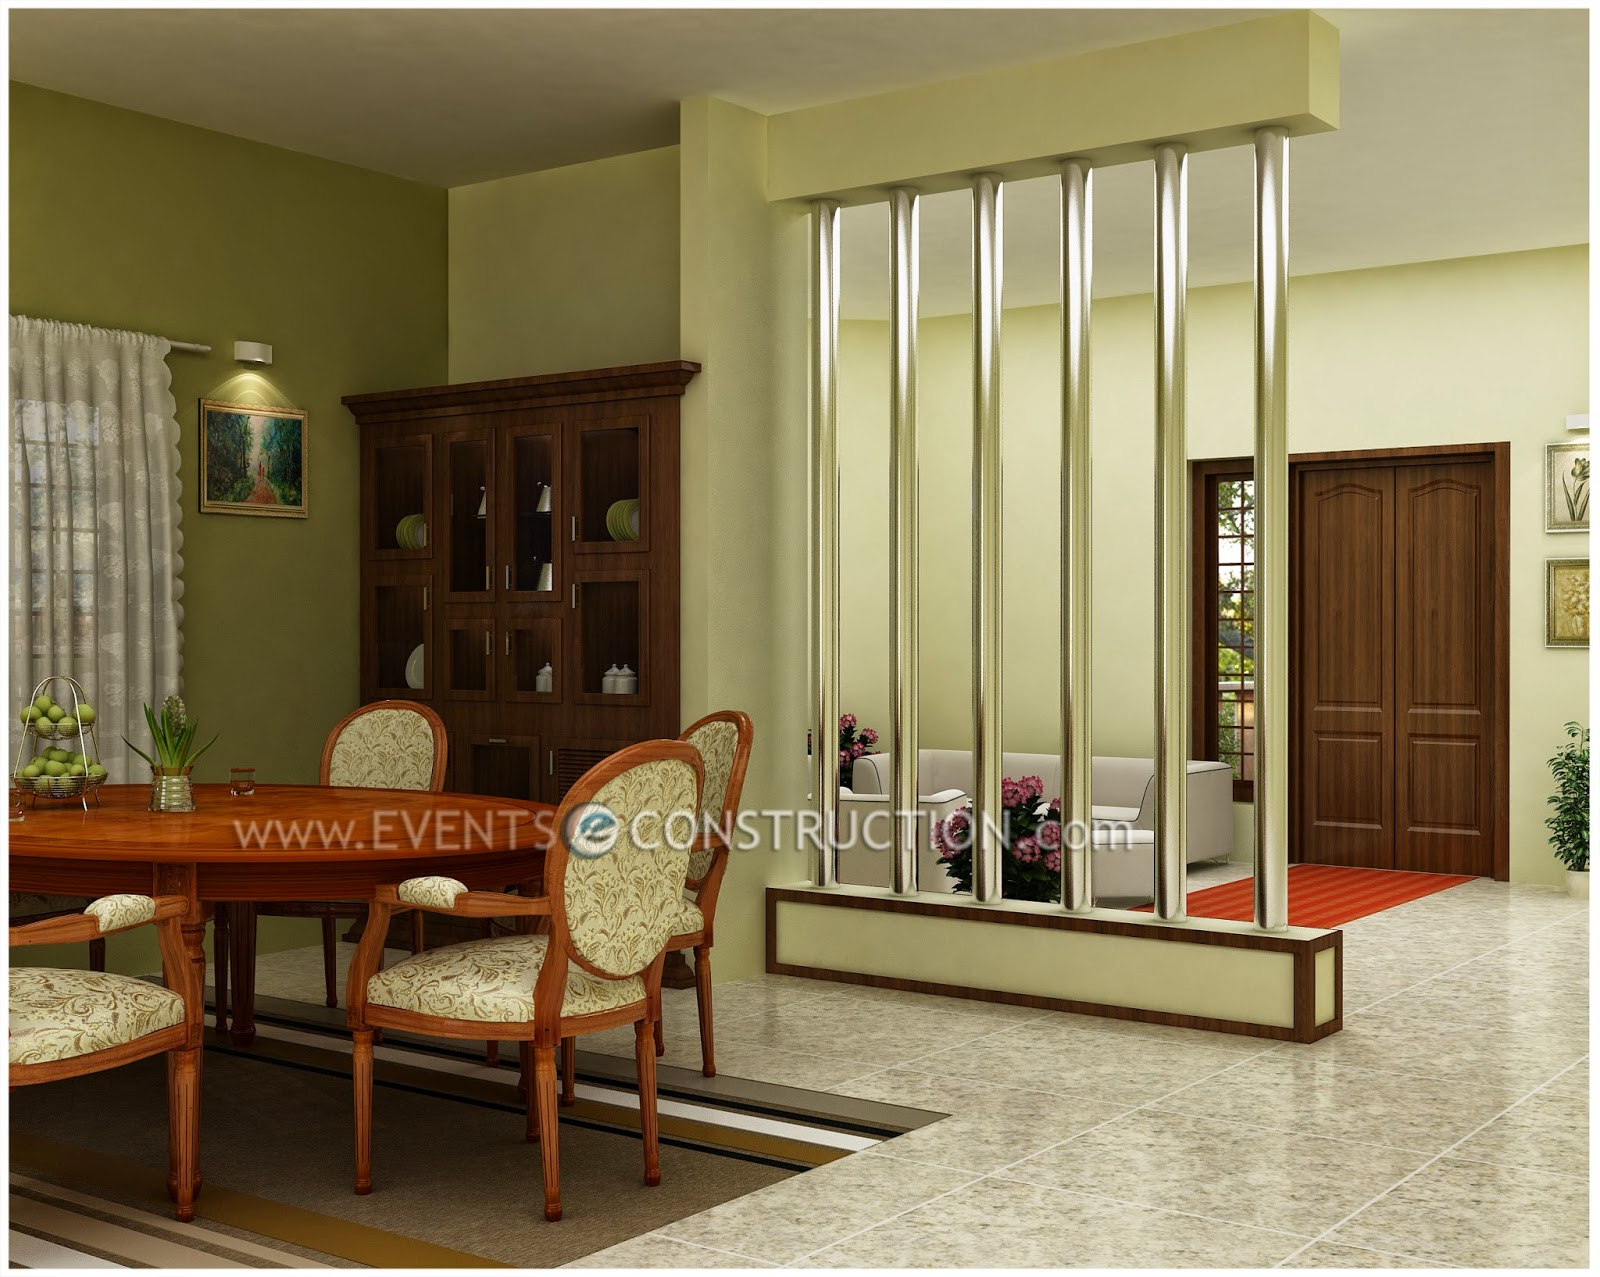 Evens construction pvt ltd living area and dining room for Partition designs between kitchen and living room